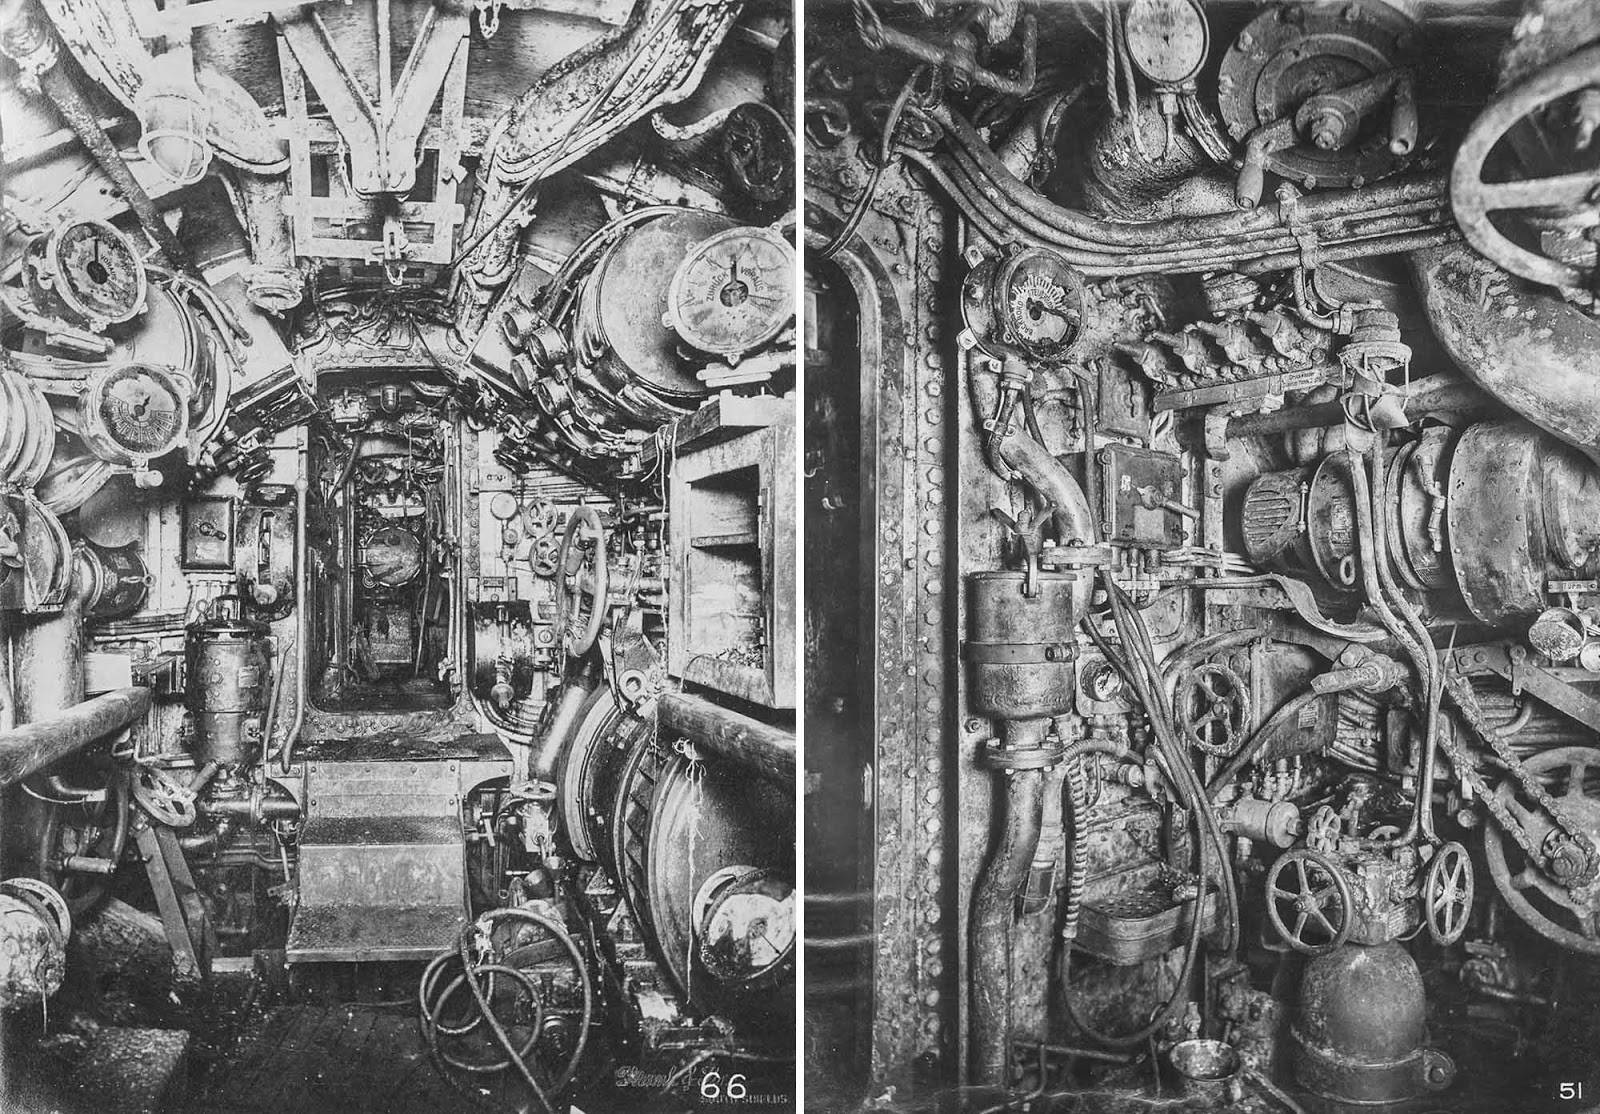 (Left) Electric control room, looking aft to motor room and stern torpedo room. (Right) Engine room, looking forward on starboard side.